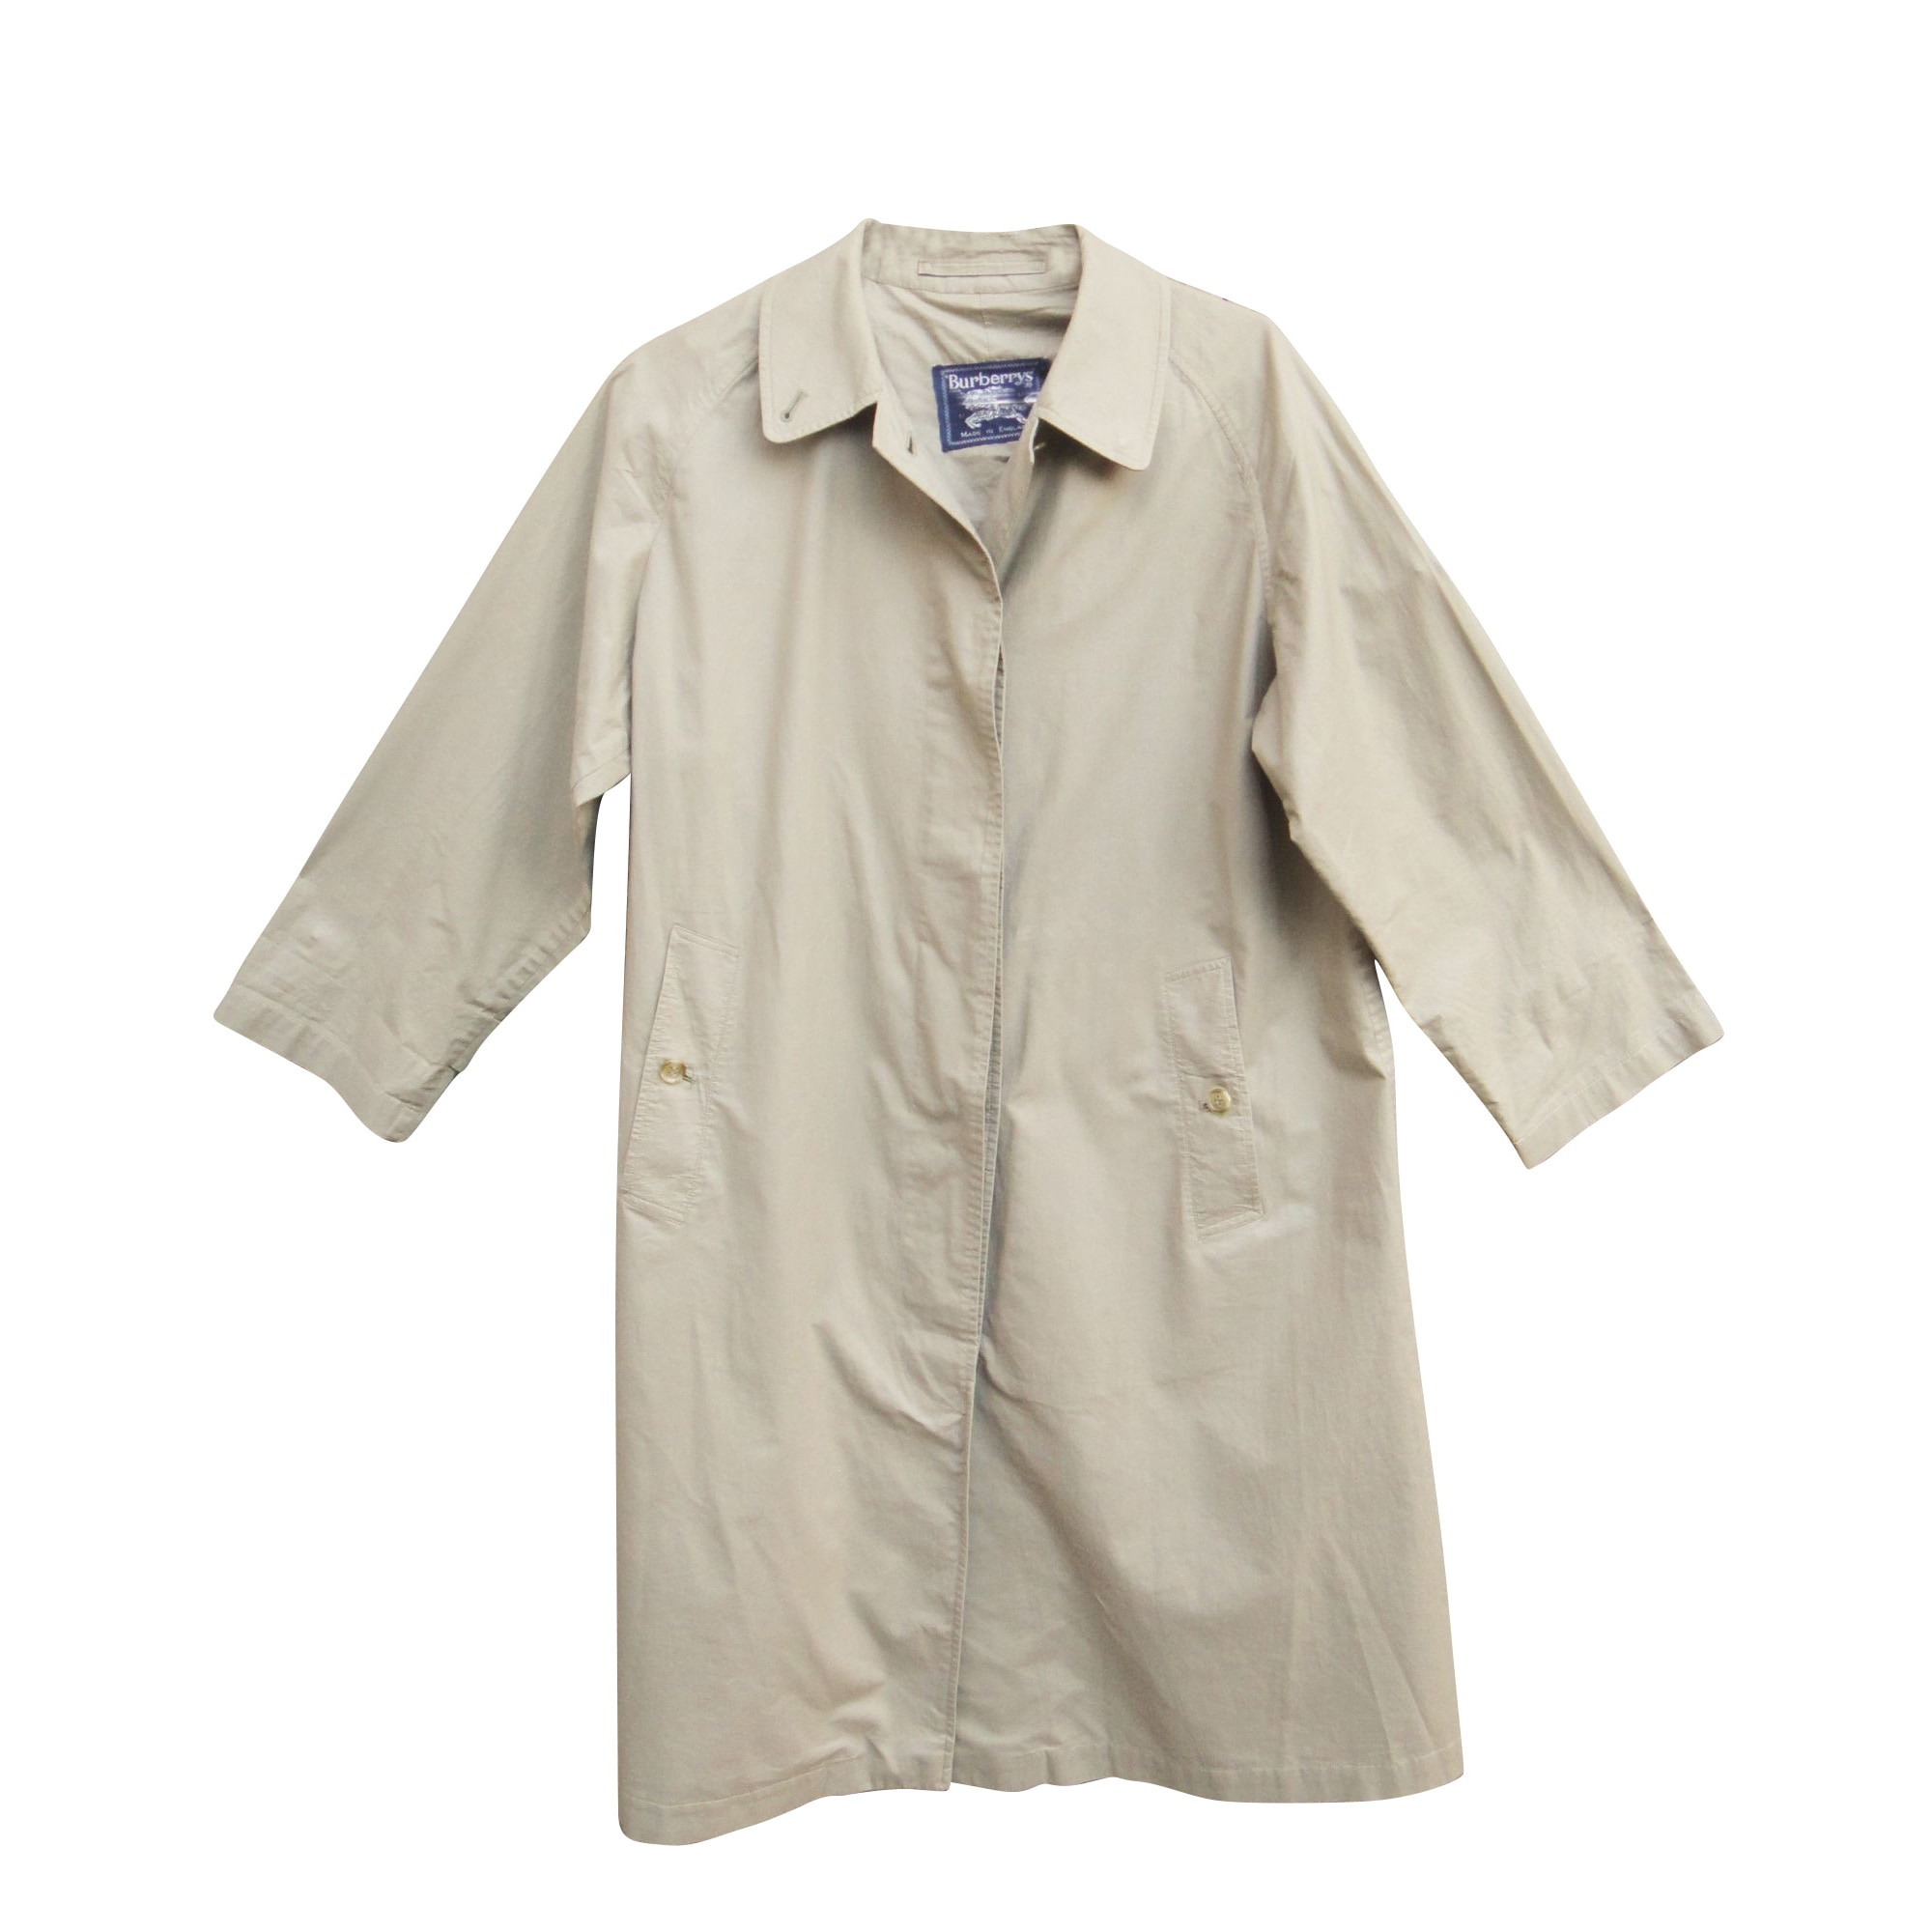 Impermeabile, trench BURBERRY Beige, cammello